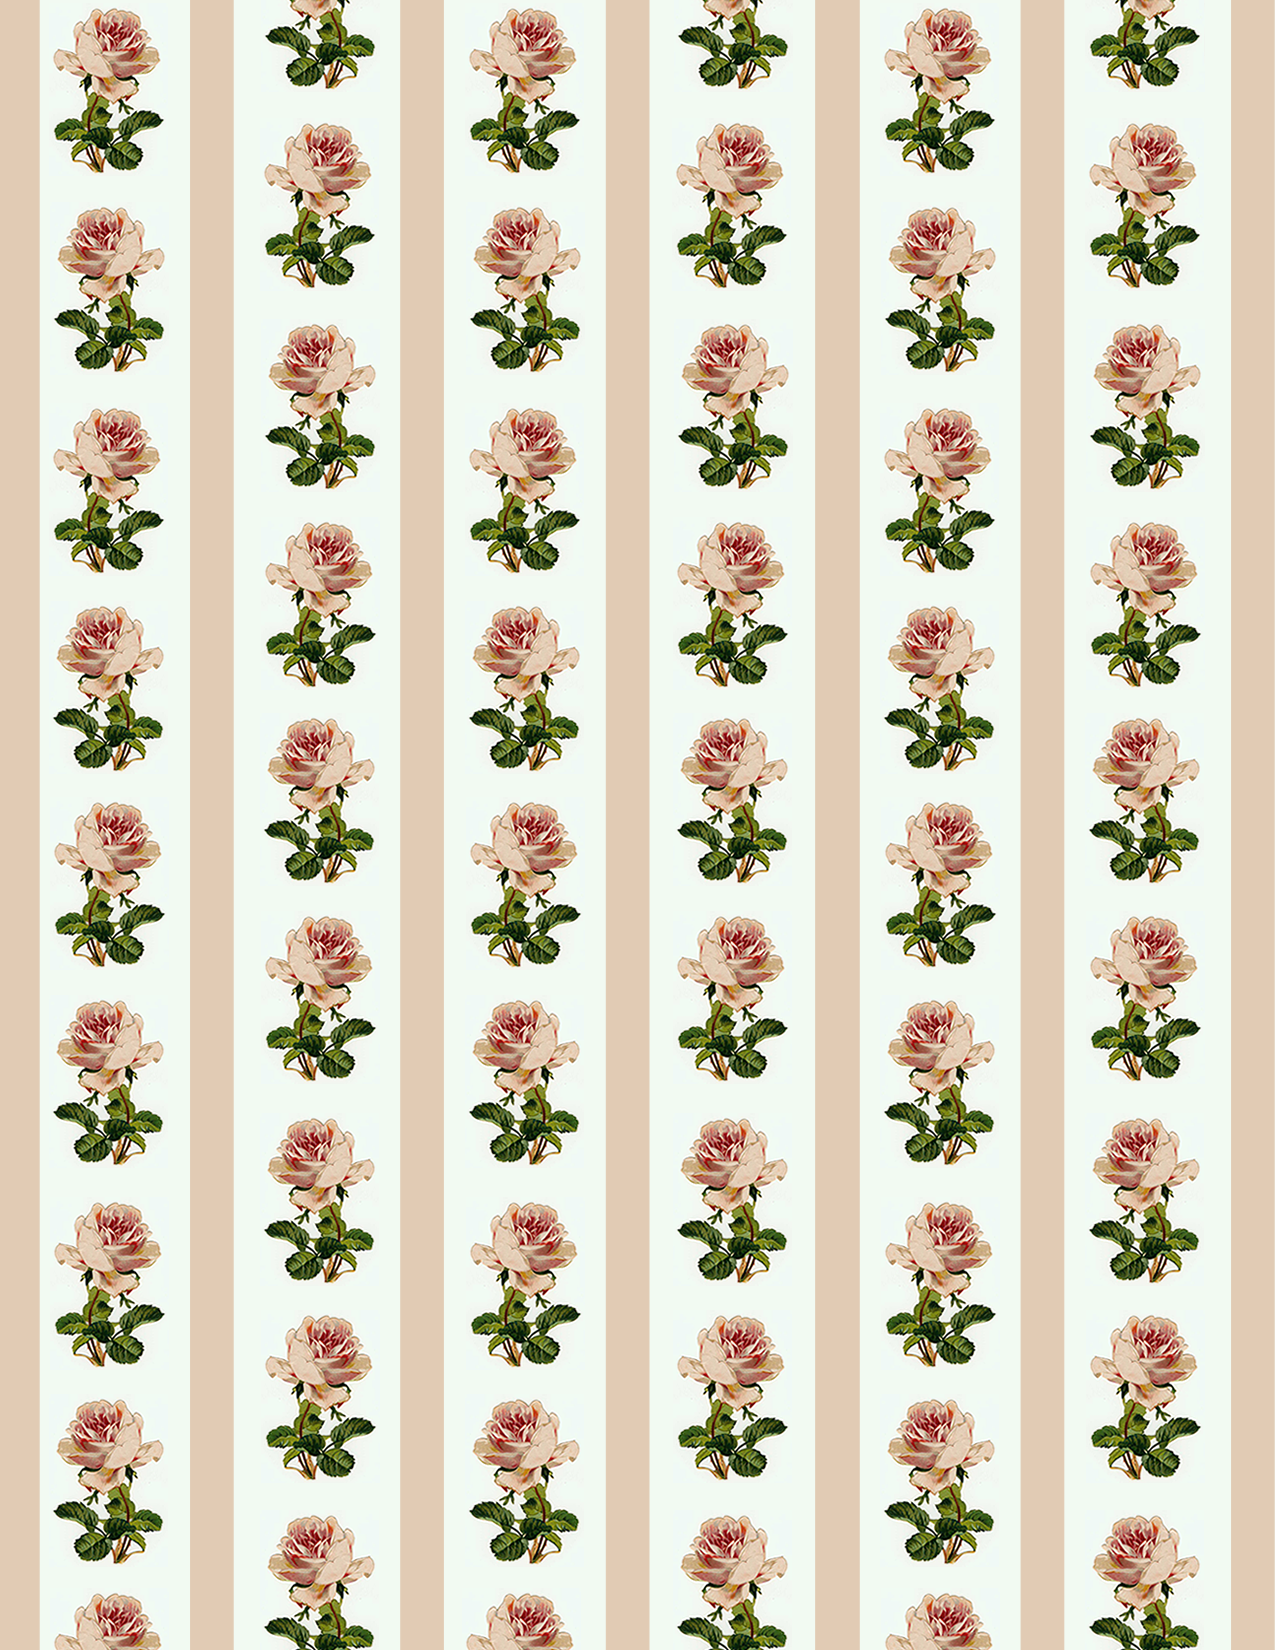 Scrap paper flowers image collections flower decoration ideas free clip art from vintage holiday crafts birthday vintage flowers scrapbook paper pink roses and stripes mightylinksfo